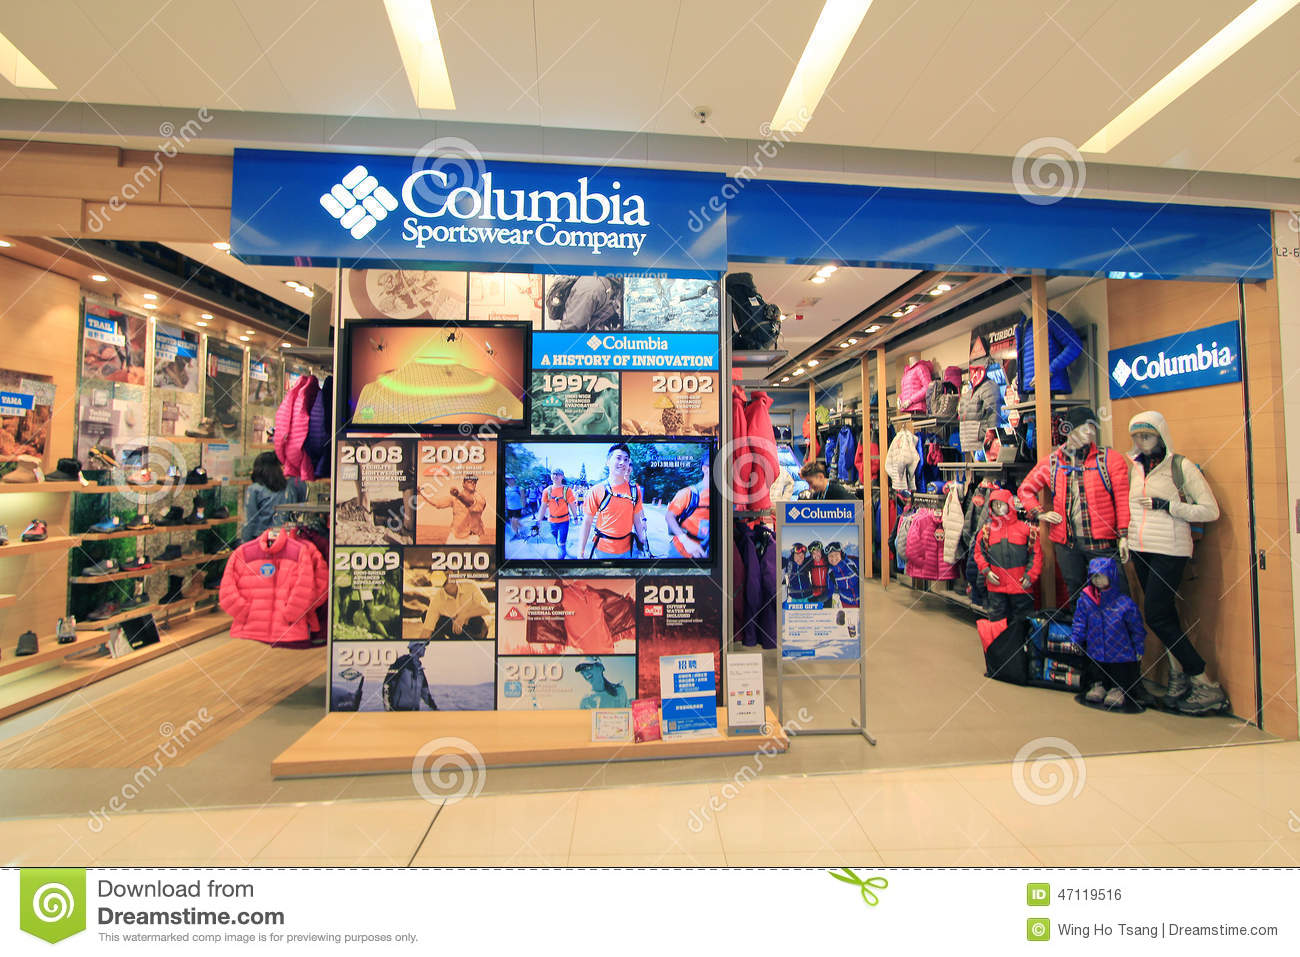 Shop direct from Columbia Sportswear. Our Outerwear is Tested Tough in the Pacific Northwest. Shop for Jackets, Pants, Shirts, Shoes & more.